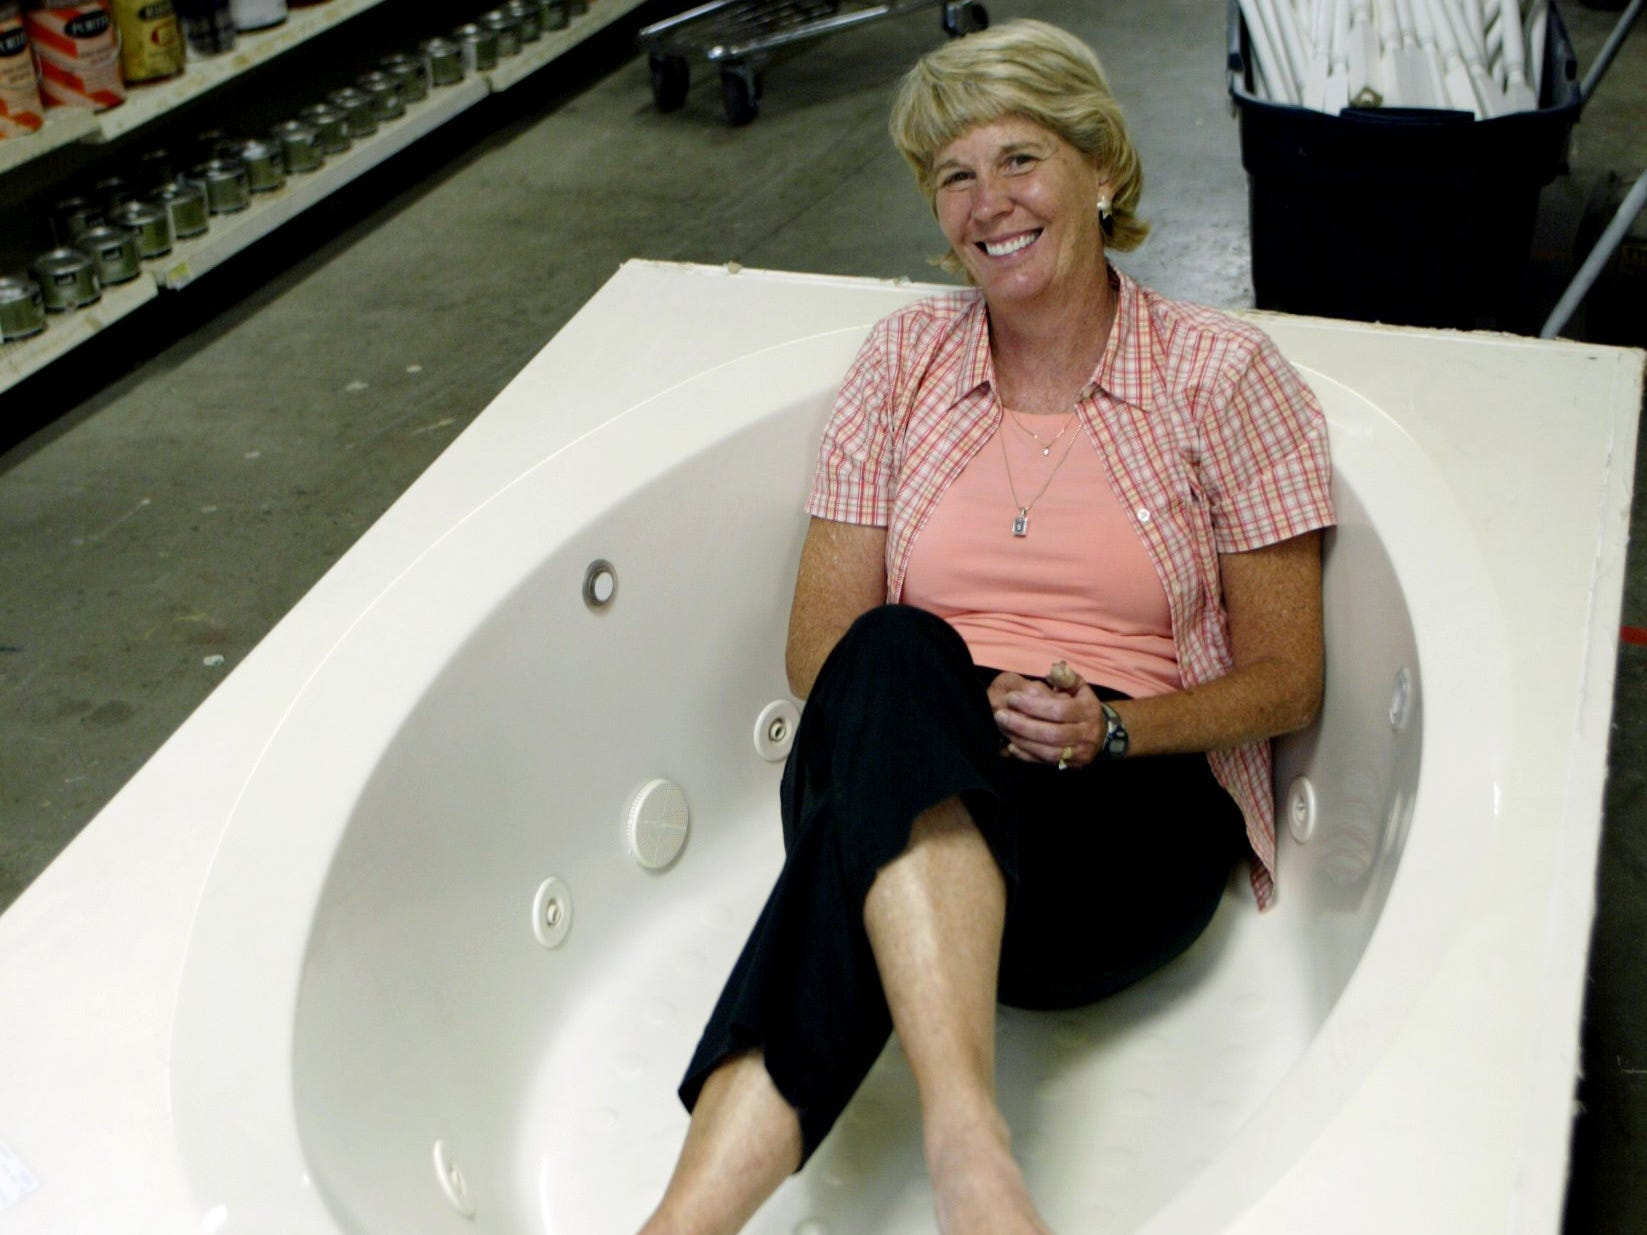 Mary Hance gets comfortable in one of the whirlpool tubs at the Habitat for Humanity HomeStore on July 17, 2006, for a story on most frequently asked questions of Ms. Cheap.